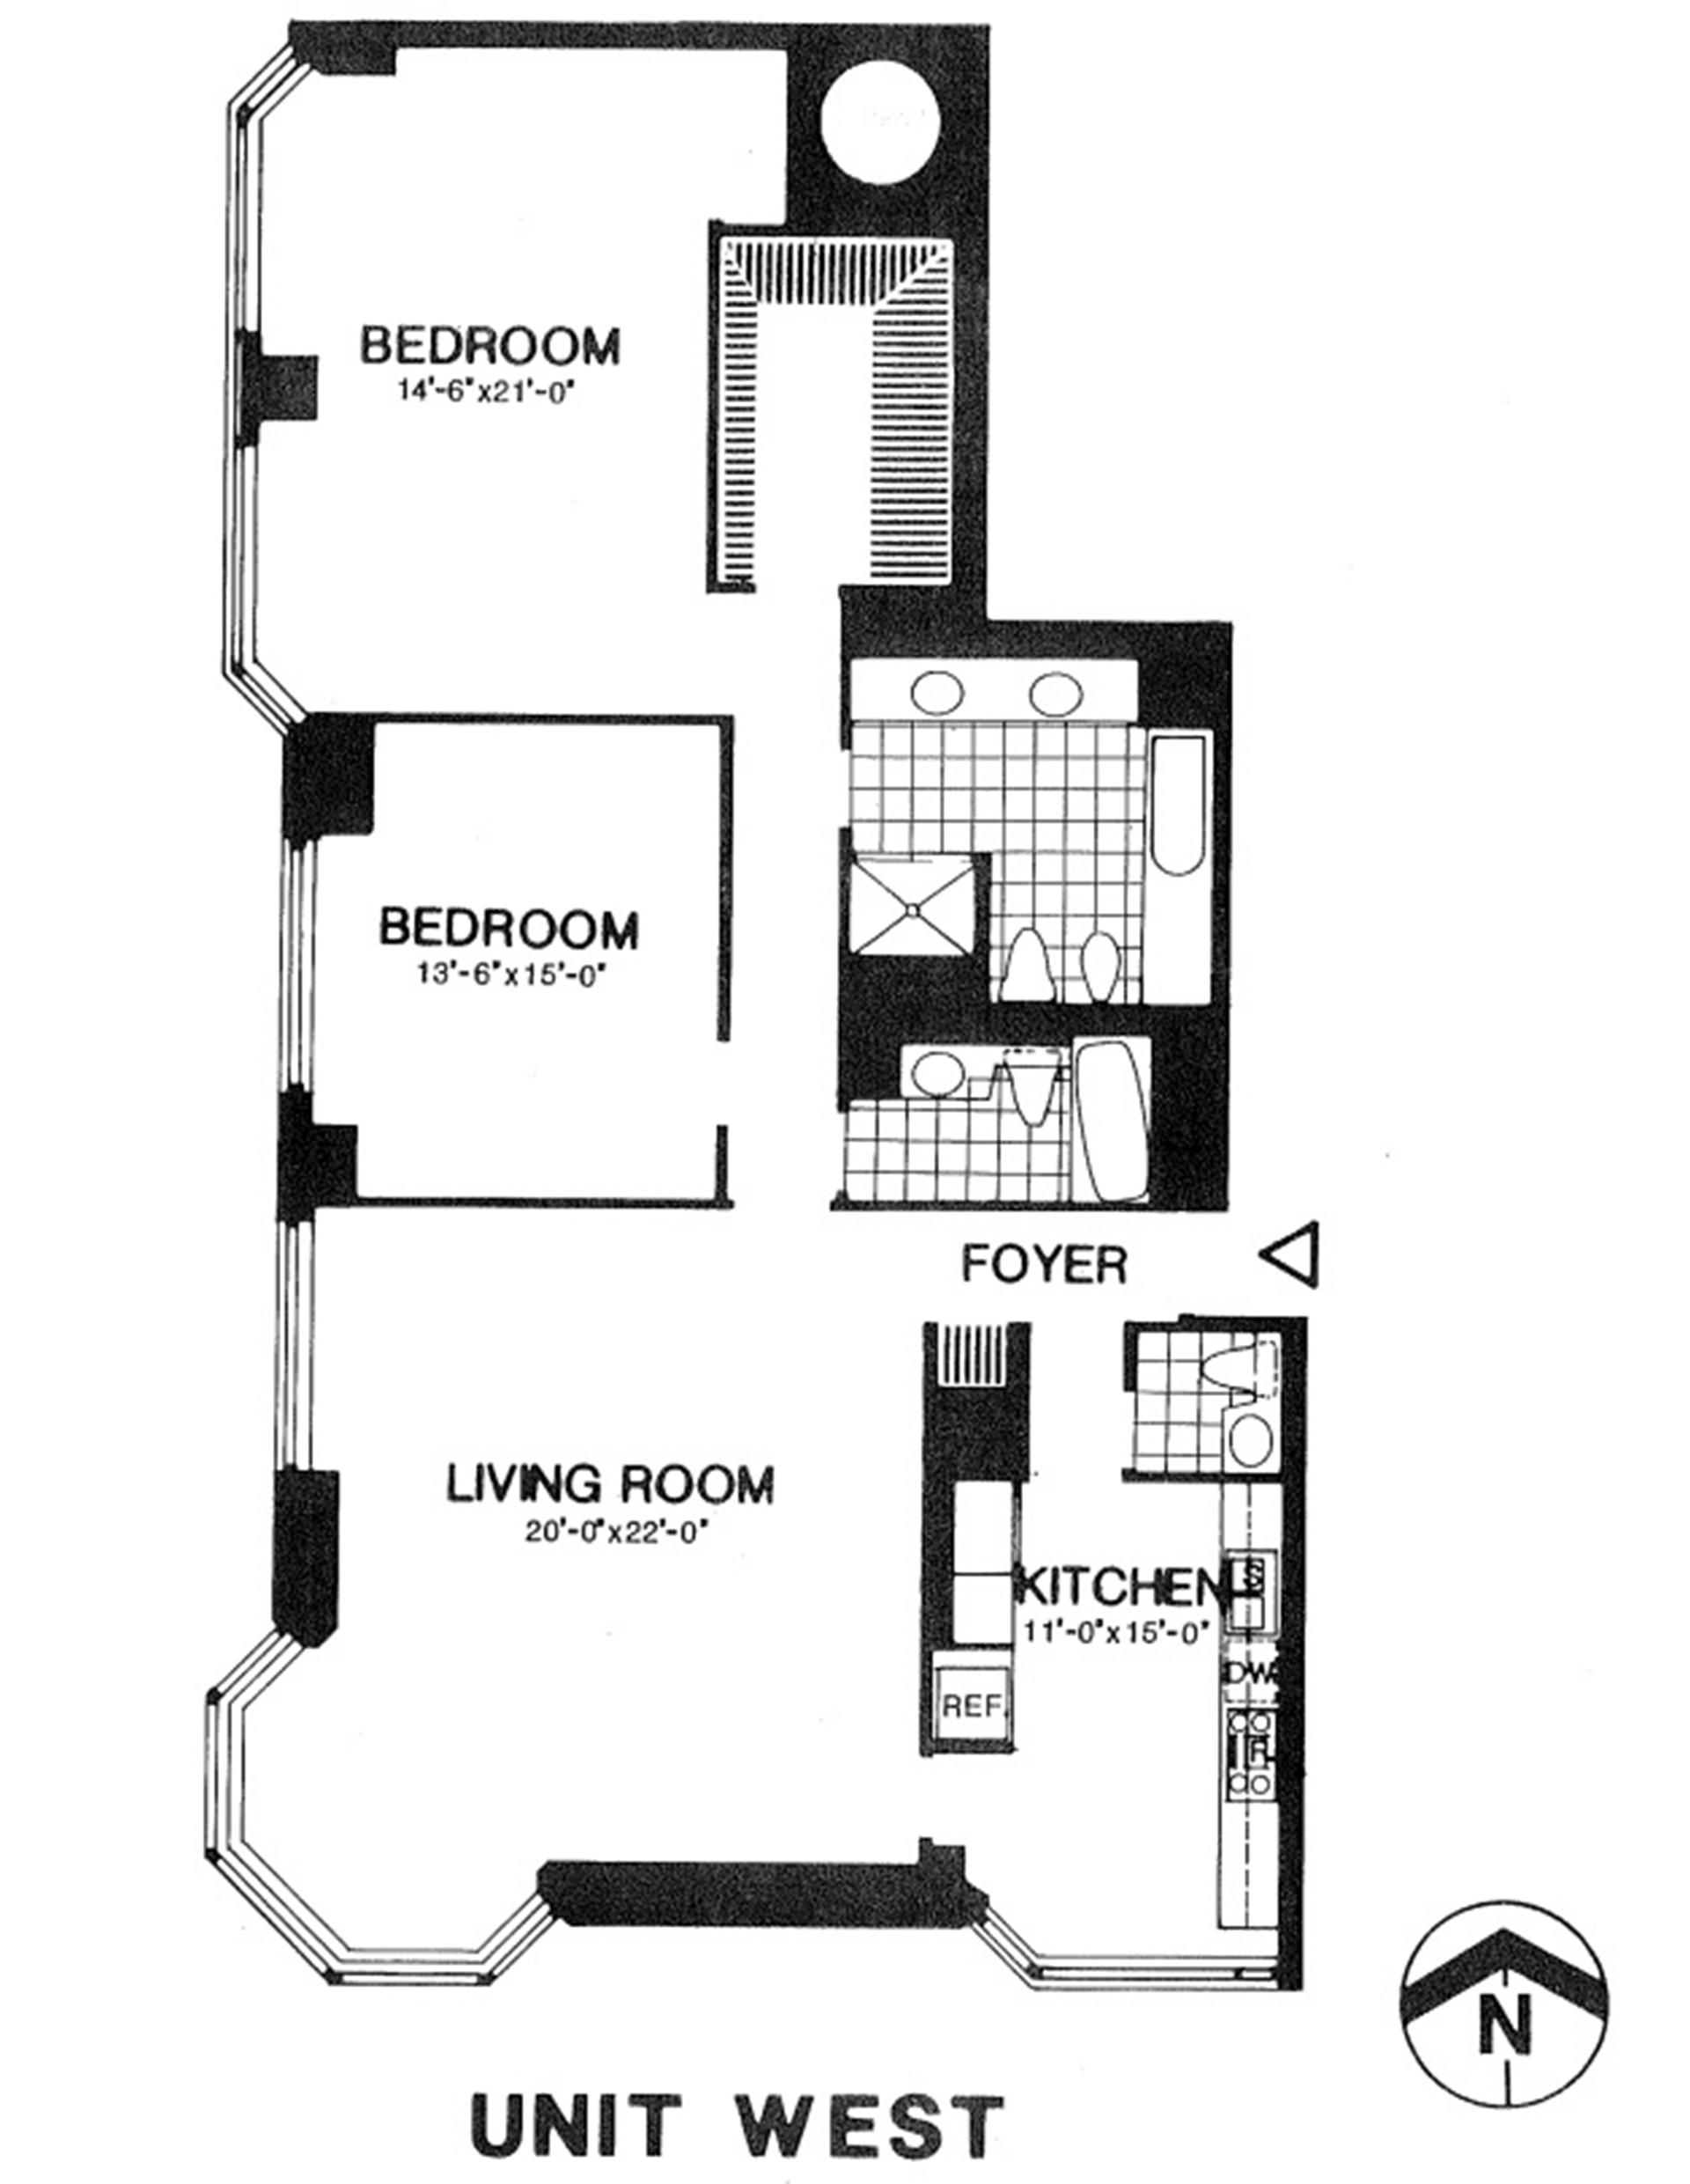 Floor plan of 200 East 65th St, 30W - Upper East Side, New York